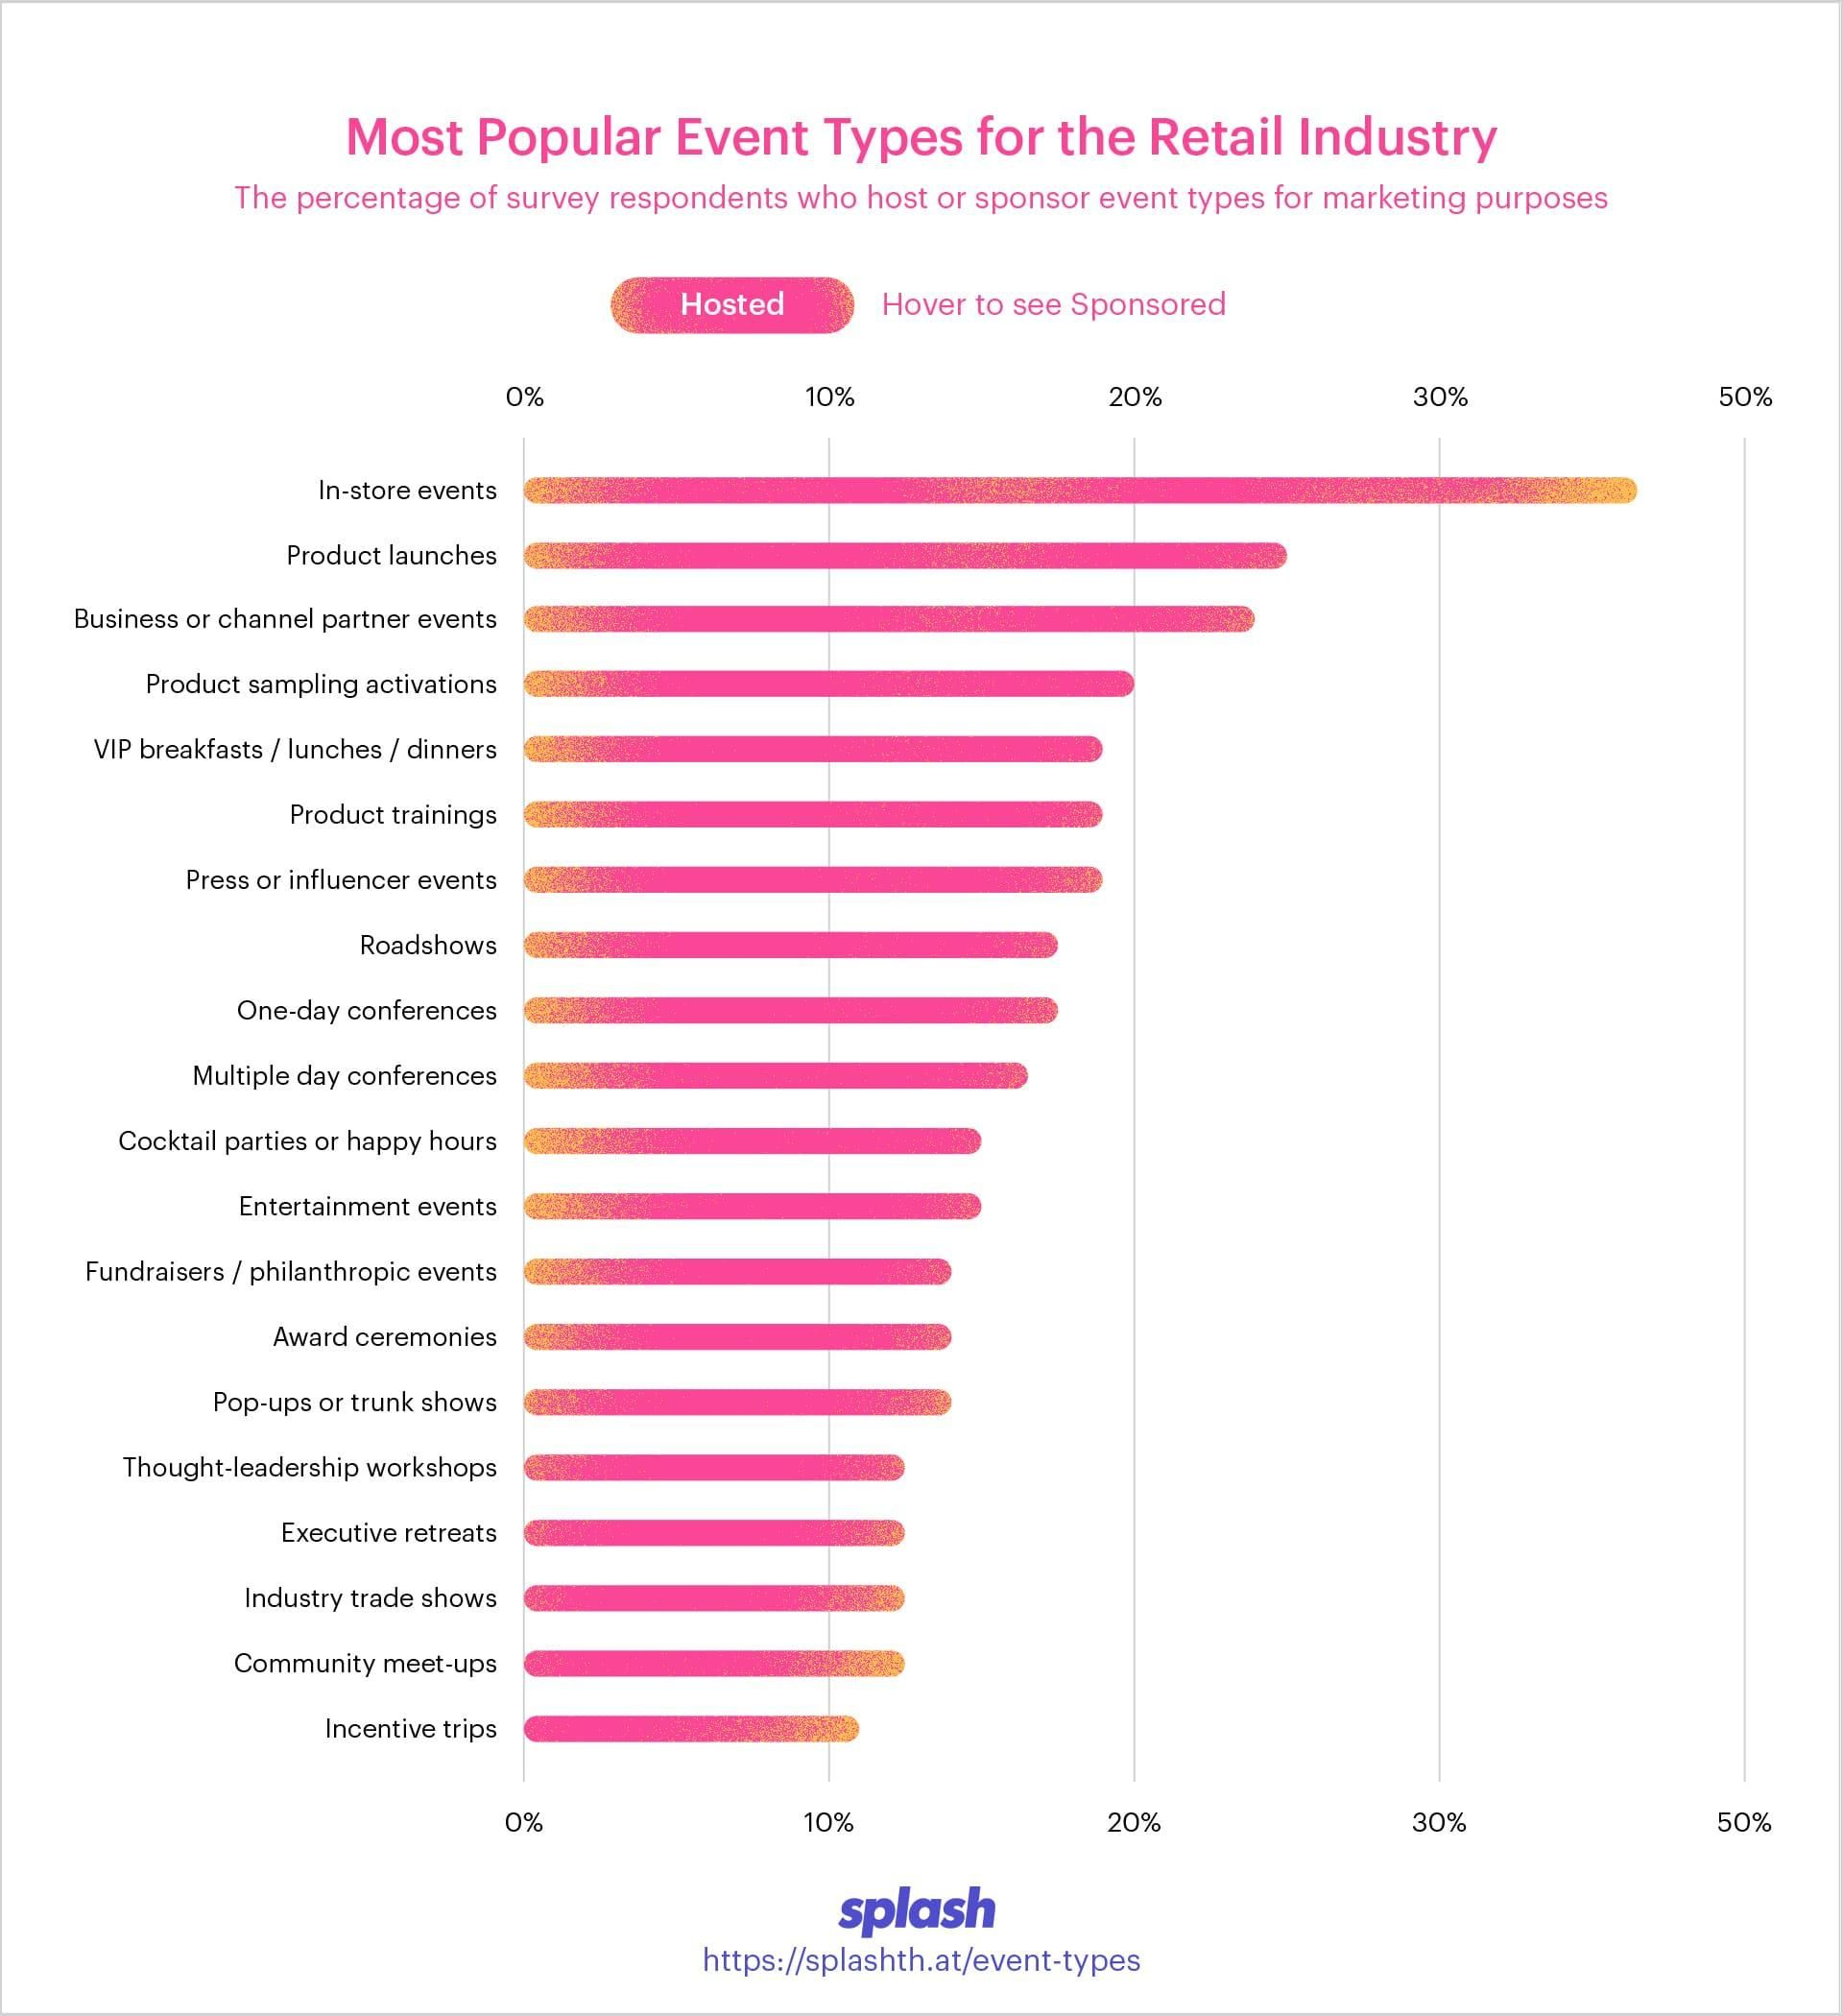 The Most Popular Event Types Across 7 Key Industries The Retail